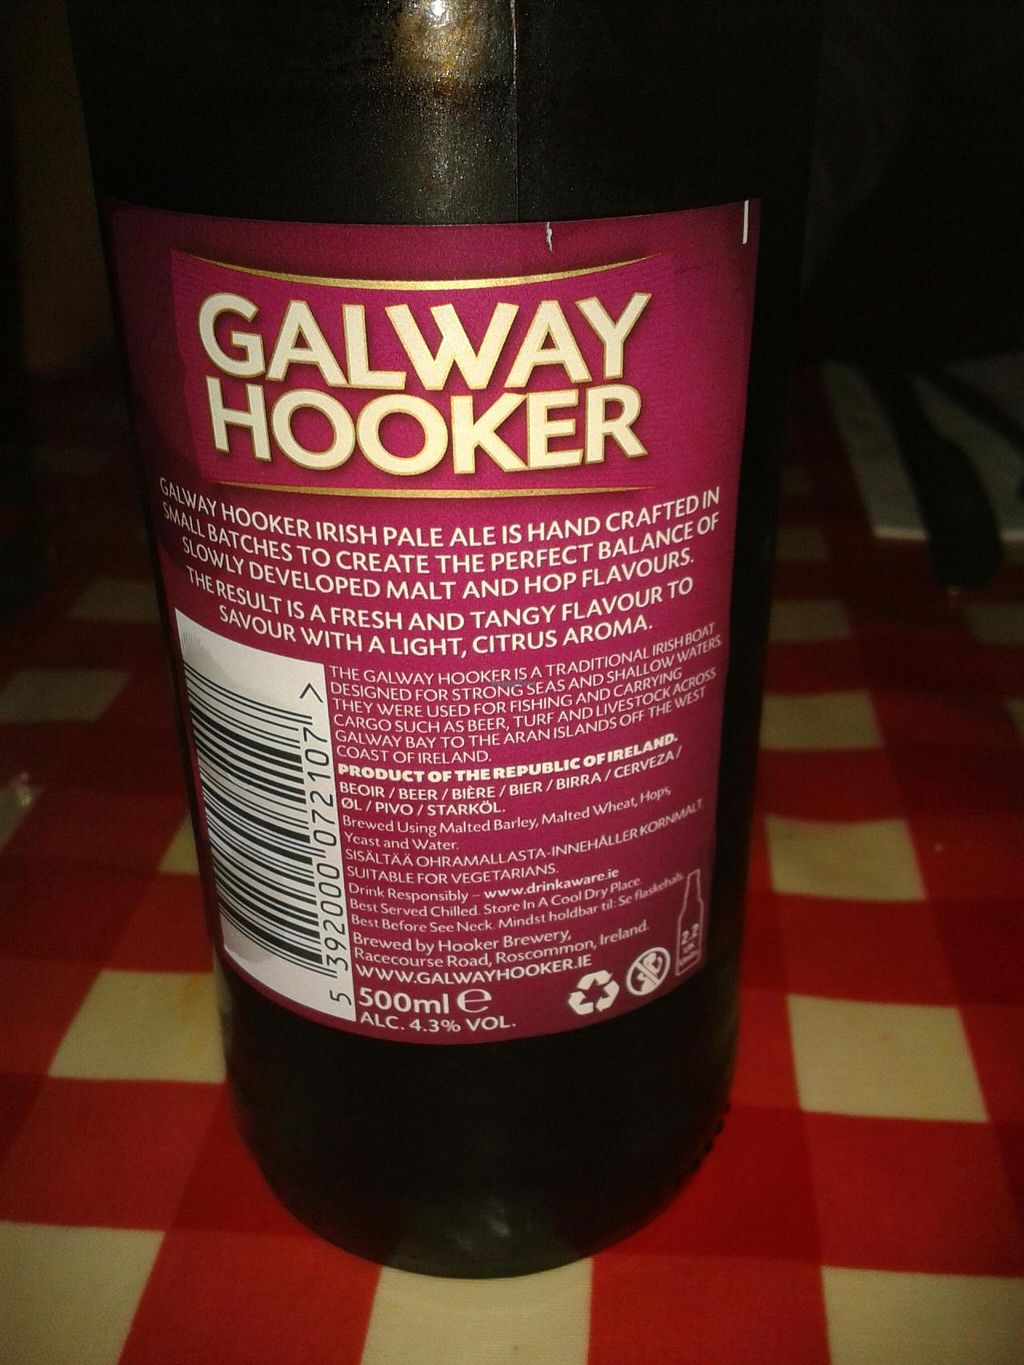 """Photo of Fat Freddy's  by <a href=""""/members/profile/JonJon"""">JonJon</a> <br/>Beer Galway Hooker suitable for vegetarians <br/> May 8, 2014  - <a href='/contact/abuse/image/40910/69626'>Report</a>"""